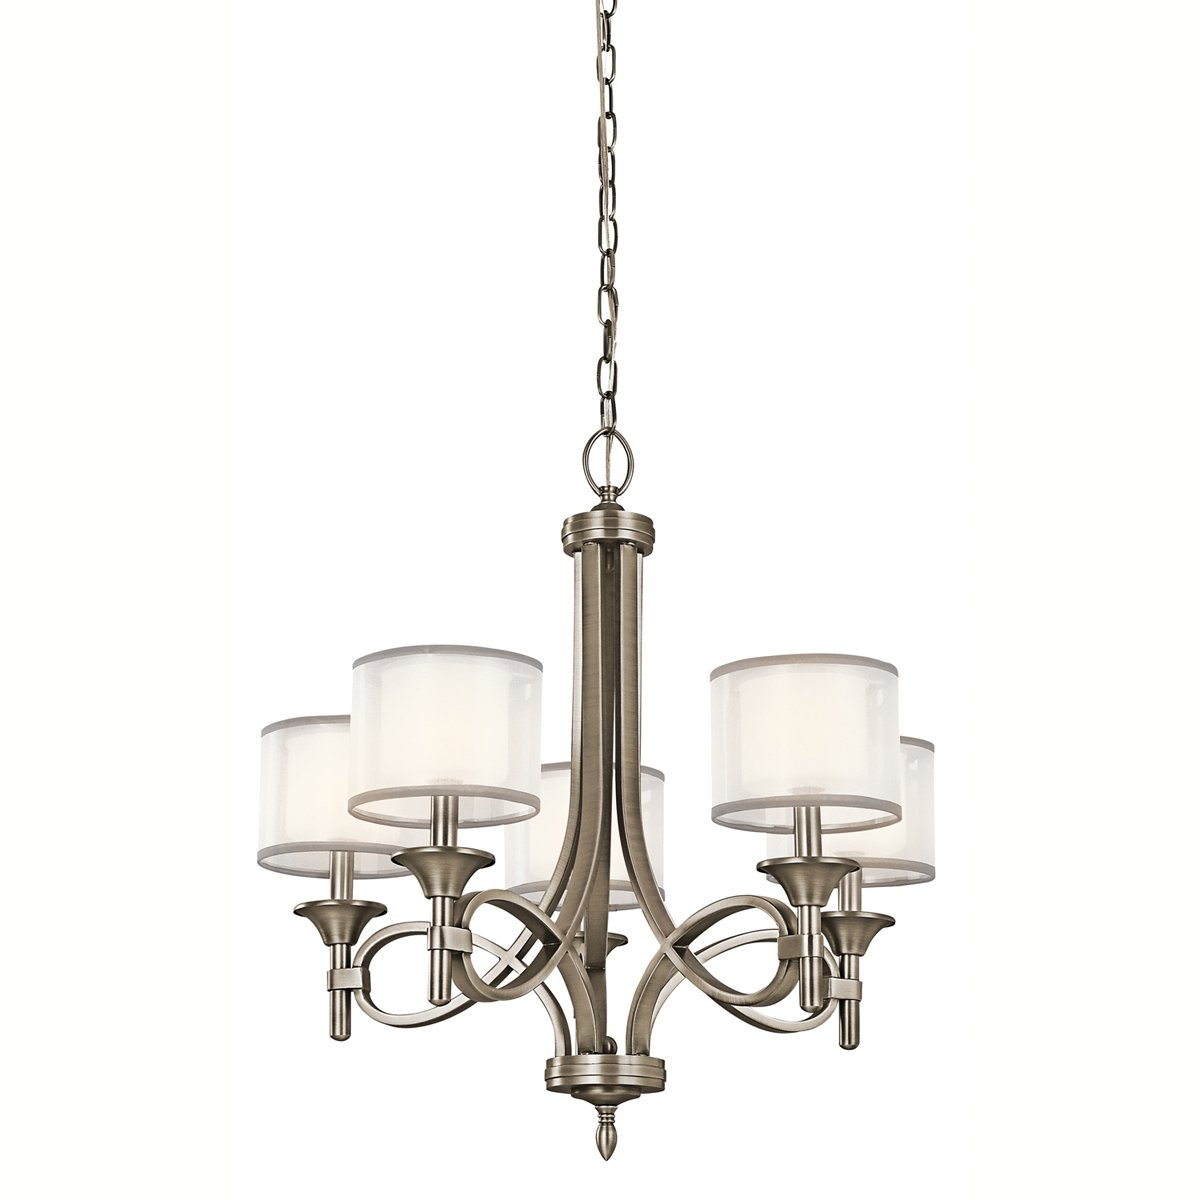 chandeliers products contemporary chandelier manufacturer plus kichler style lamps bensimone